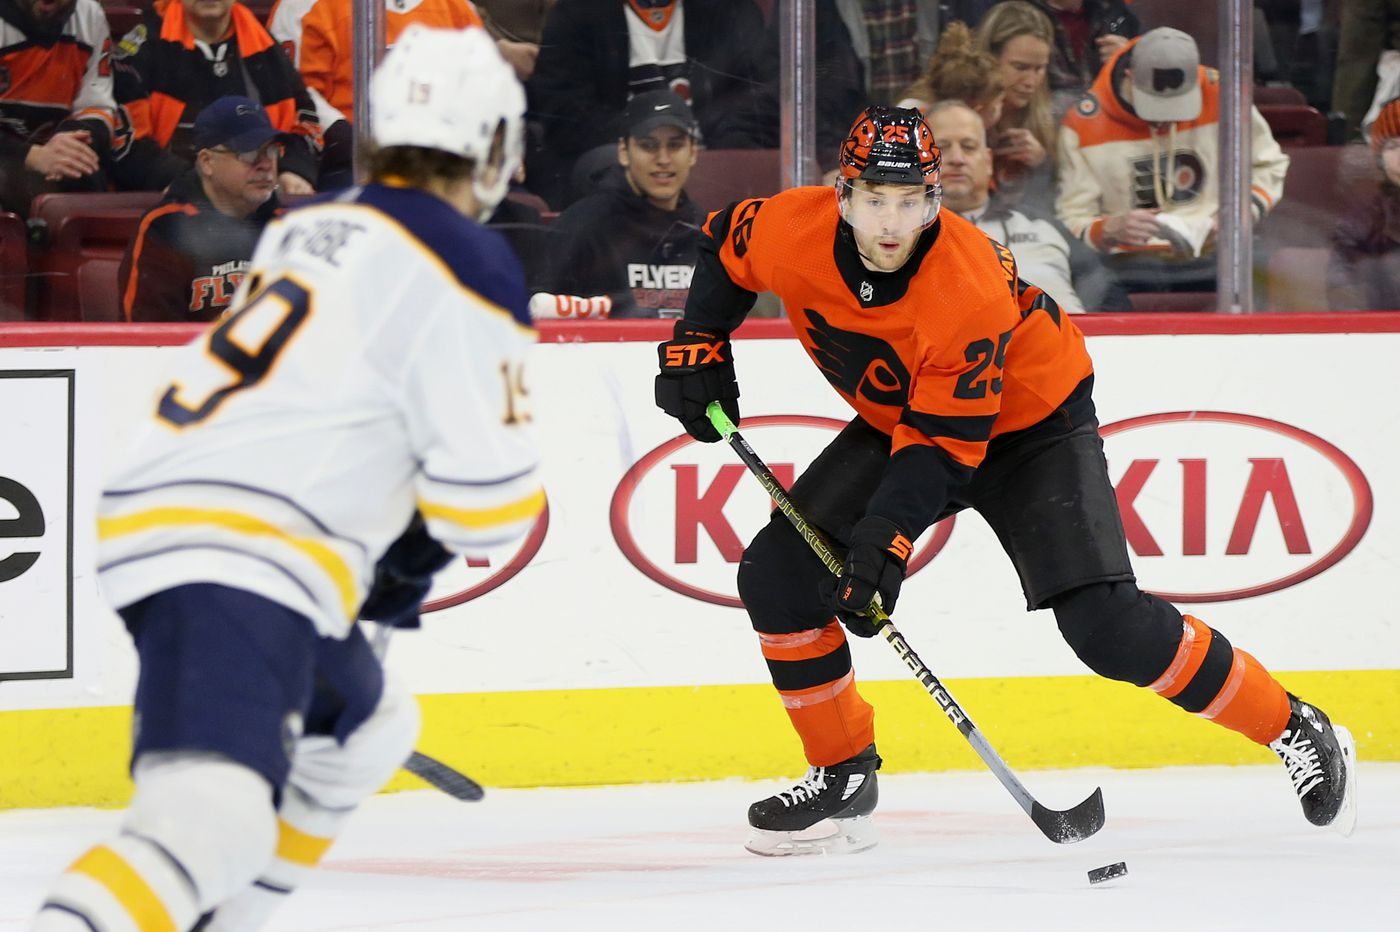 After slow, injury-hindered start, James van Riemsdyk carrying Flyers' scoring load